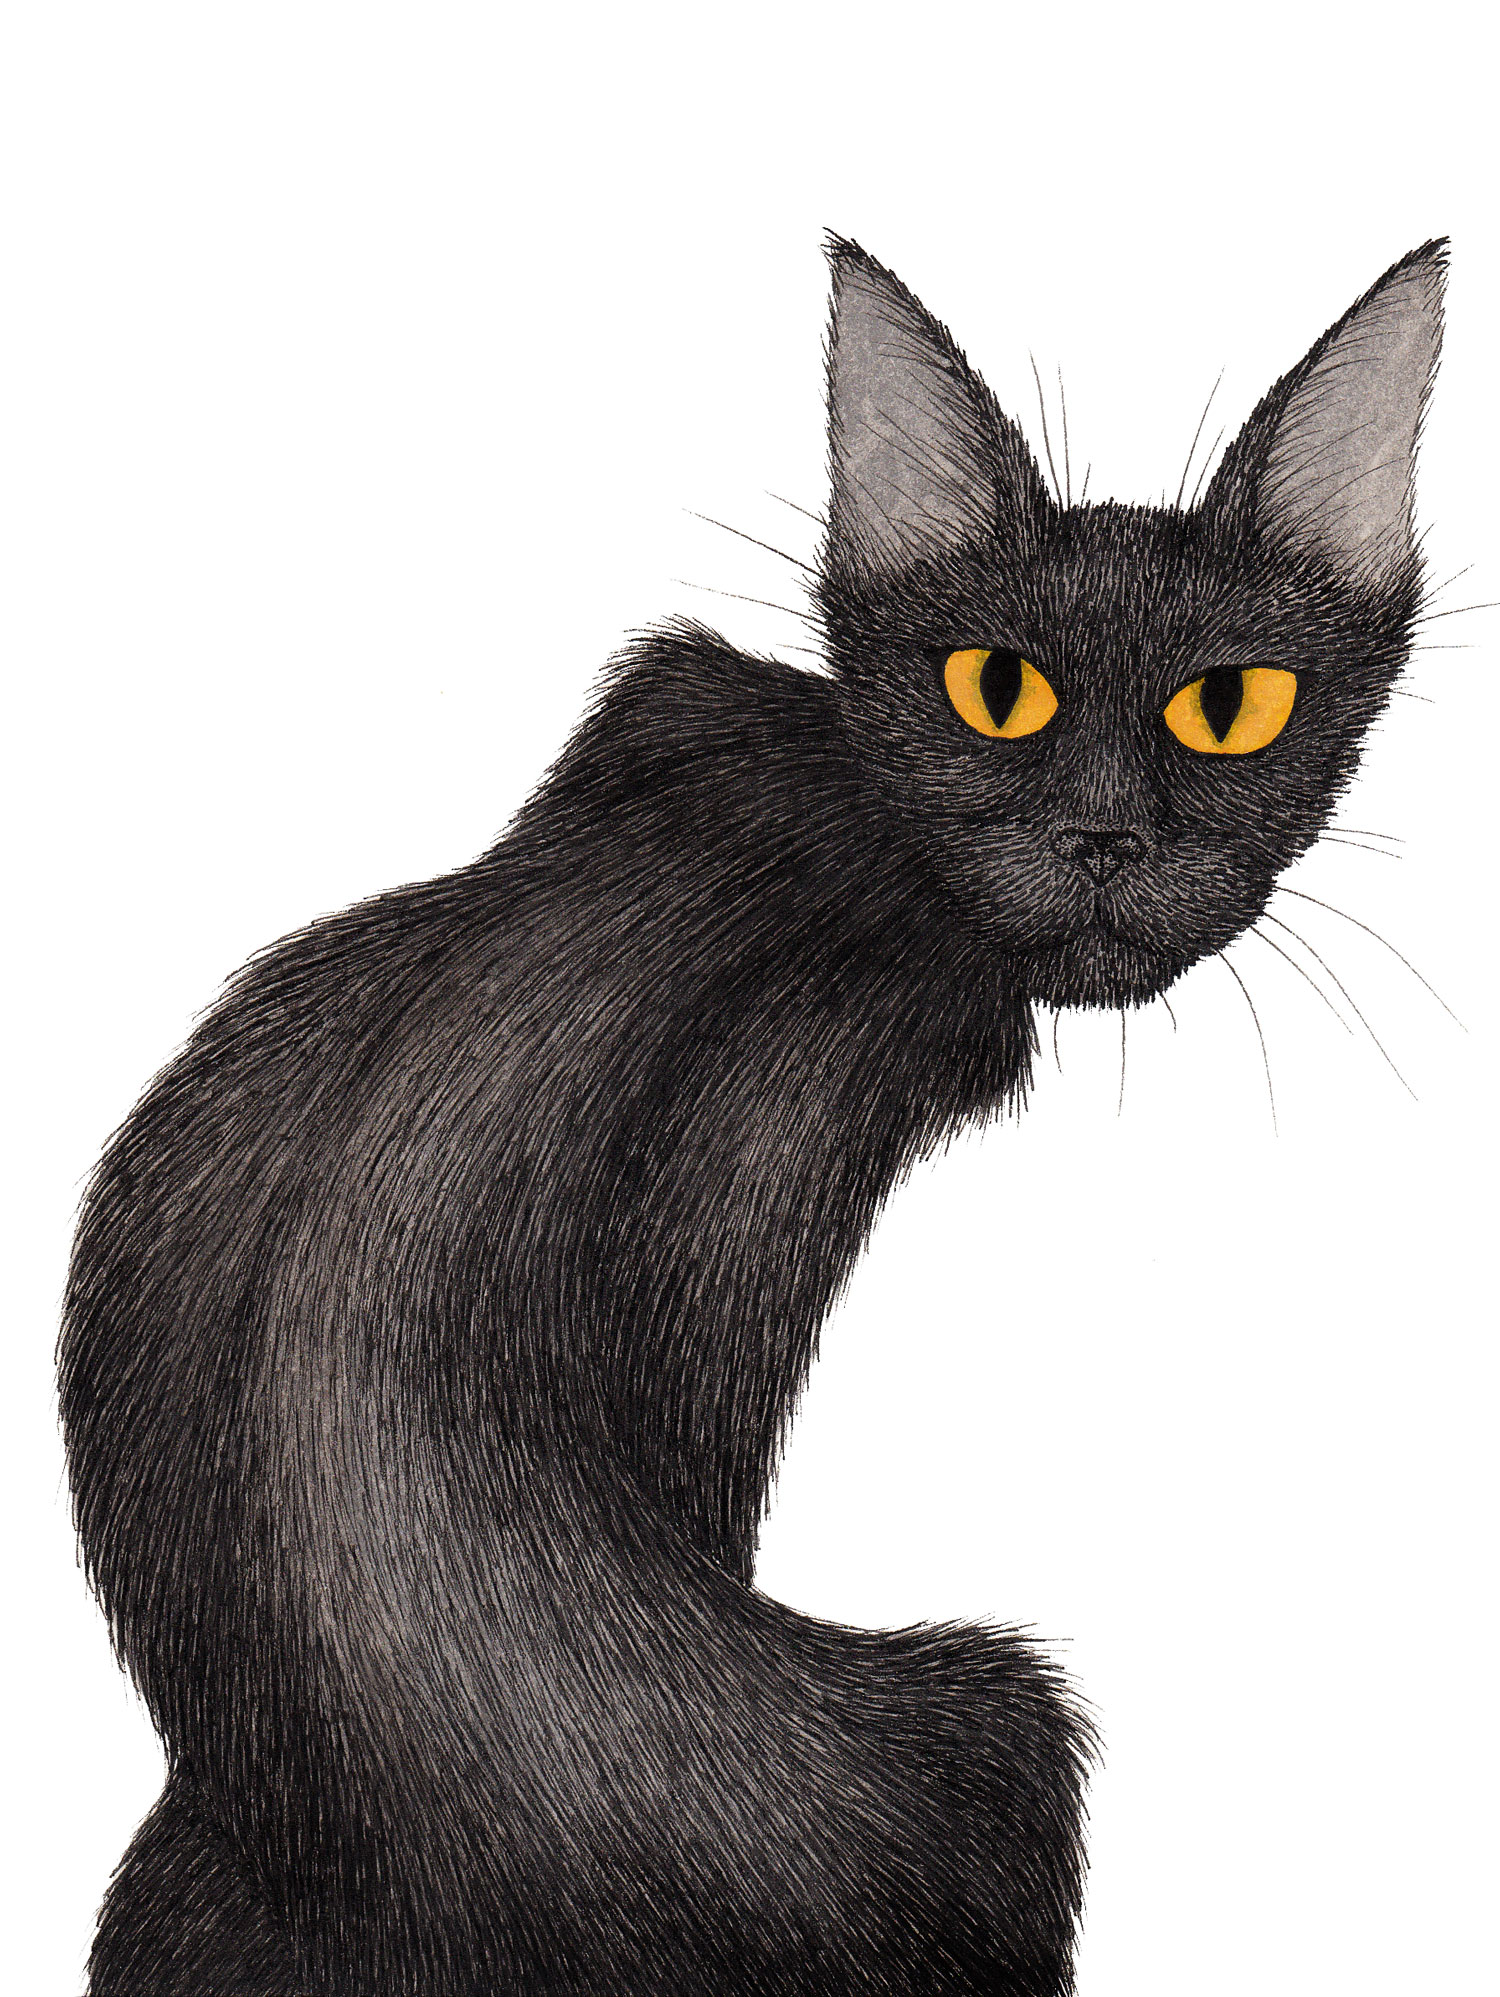 black-cat-yellow-eyes-illustration-matthew-woods.jpg